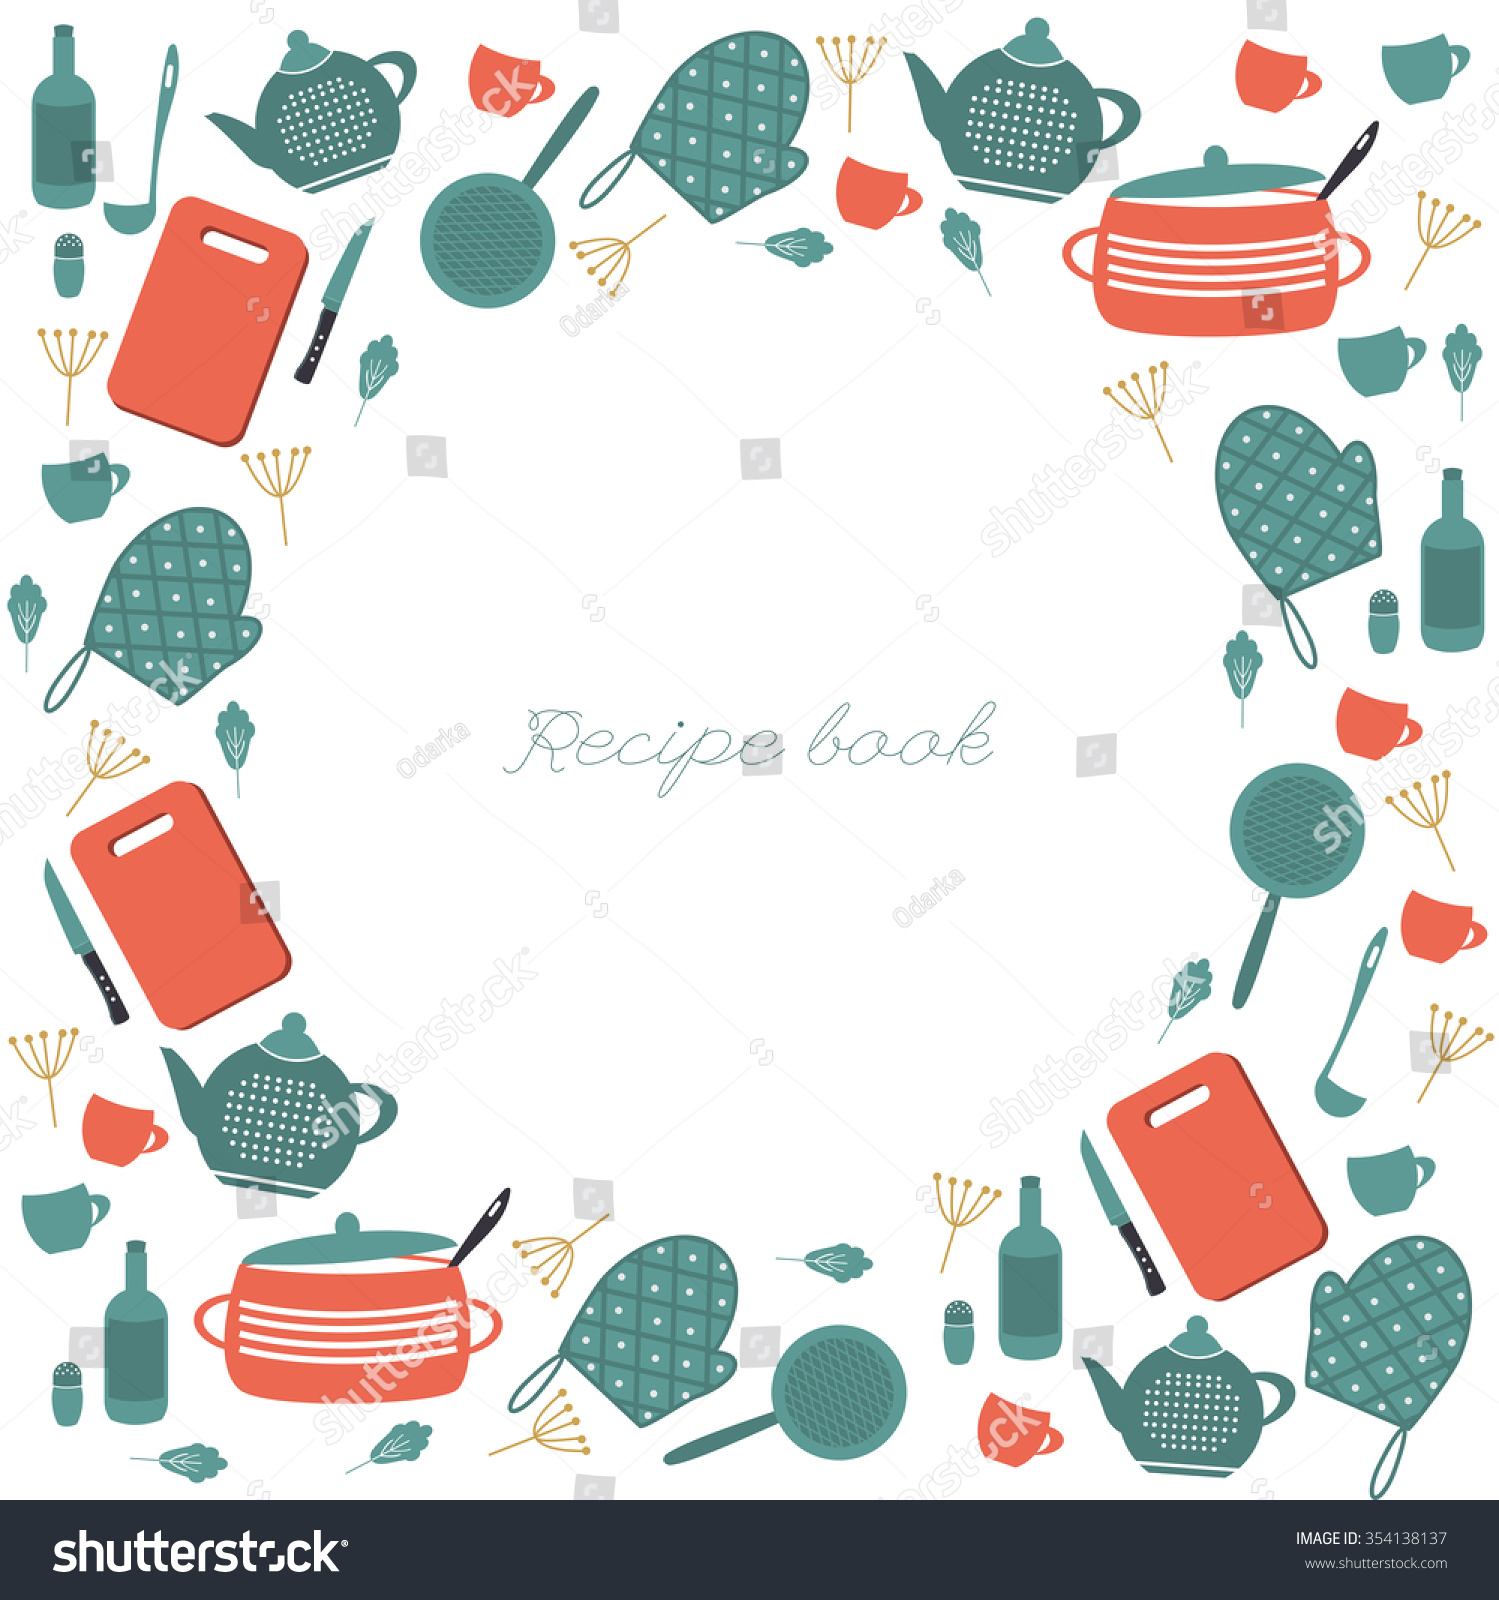 Kitchen Pictures Frames: Cute Circle Cooking Frame Kitchen Elements Stock Vector